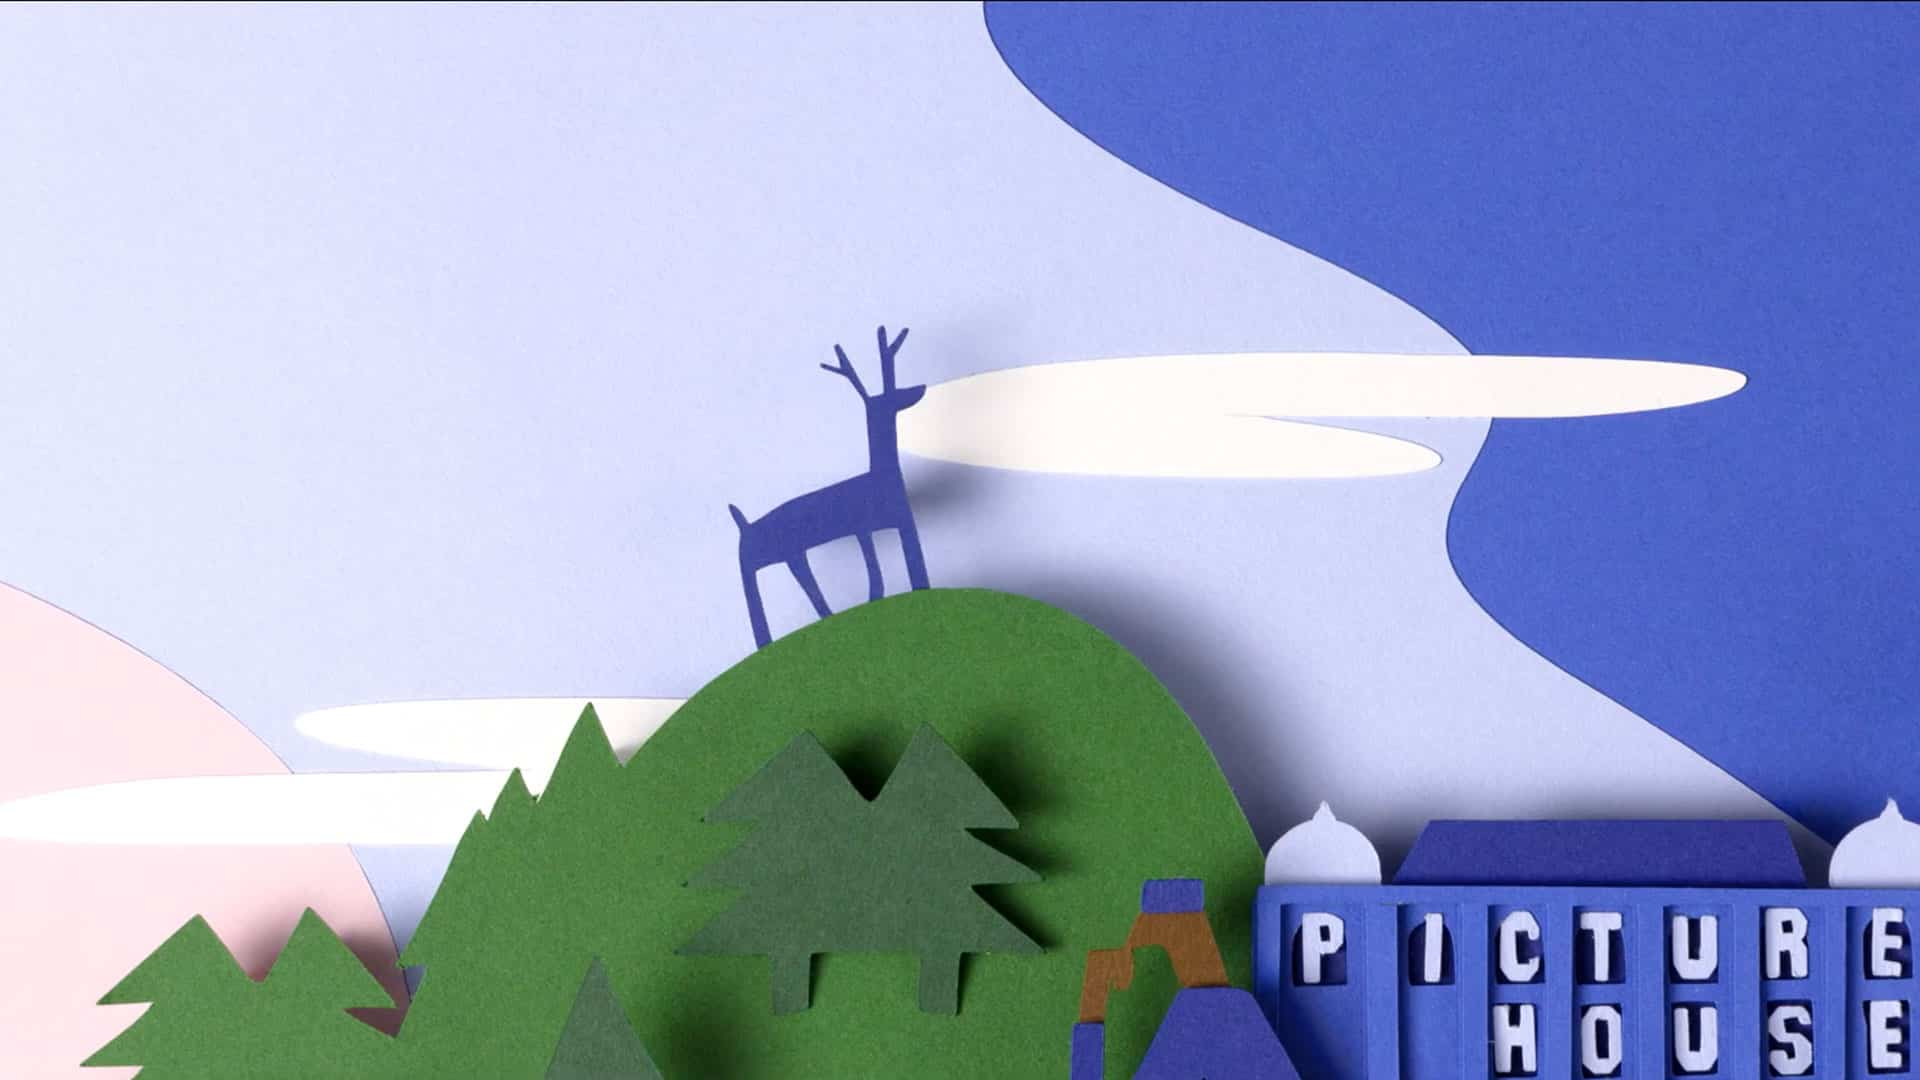 Stop motion paper cut animation for Picturehouse